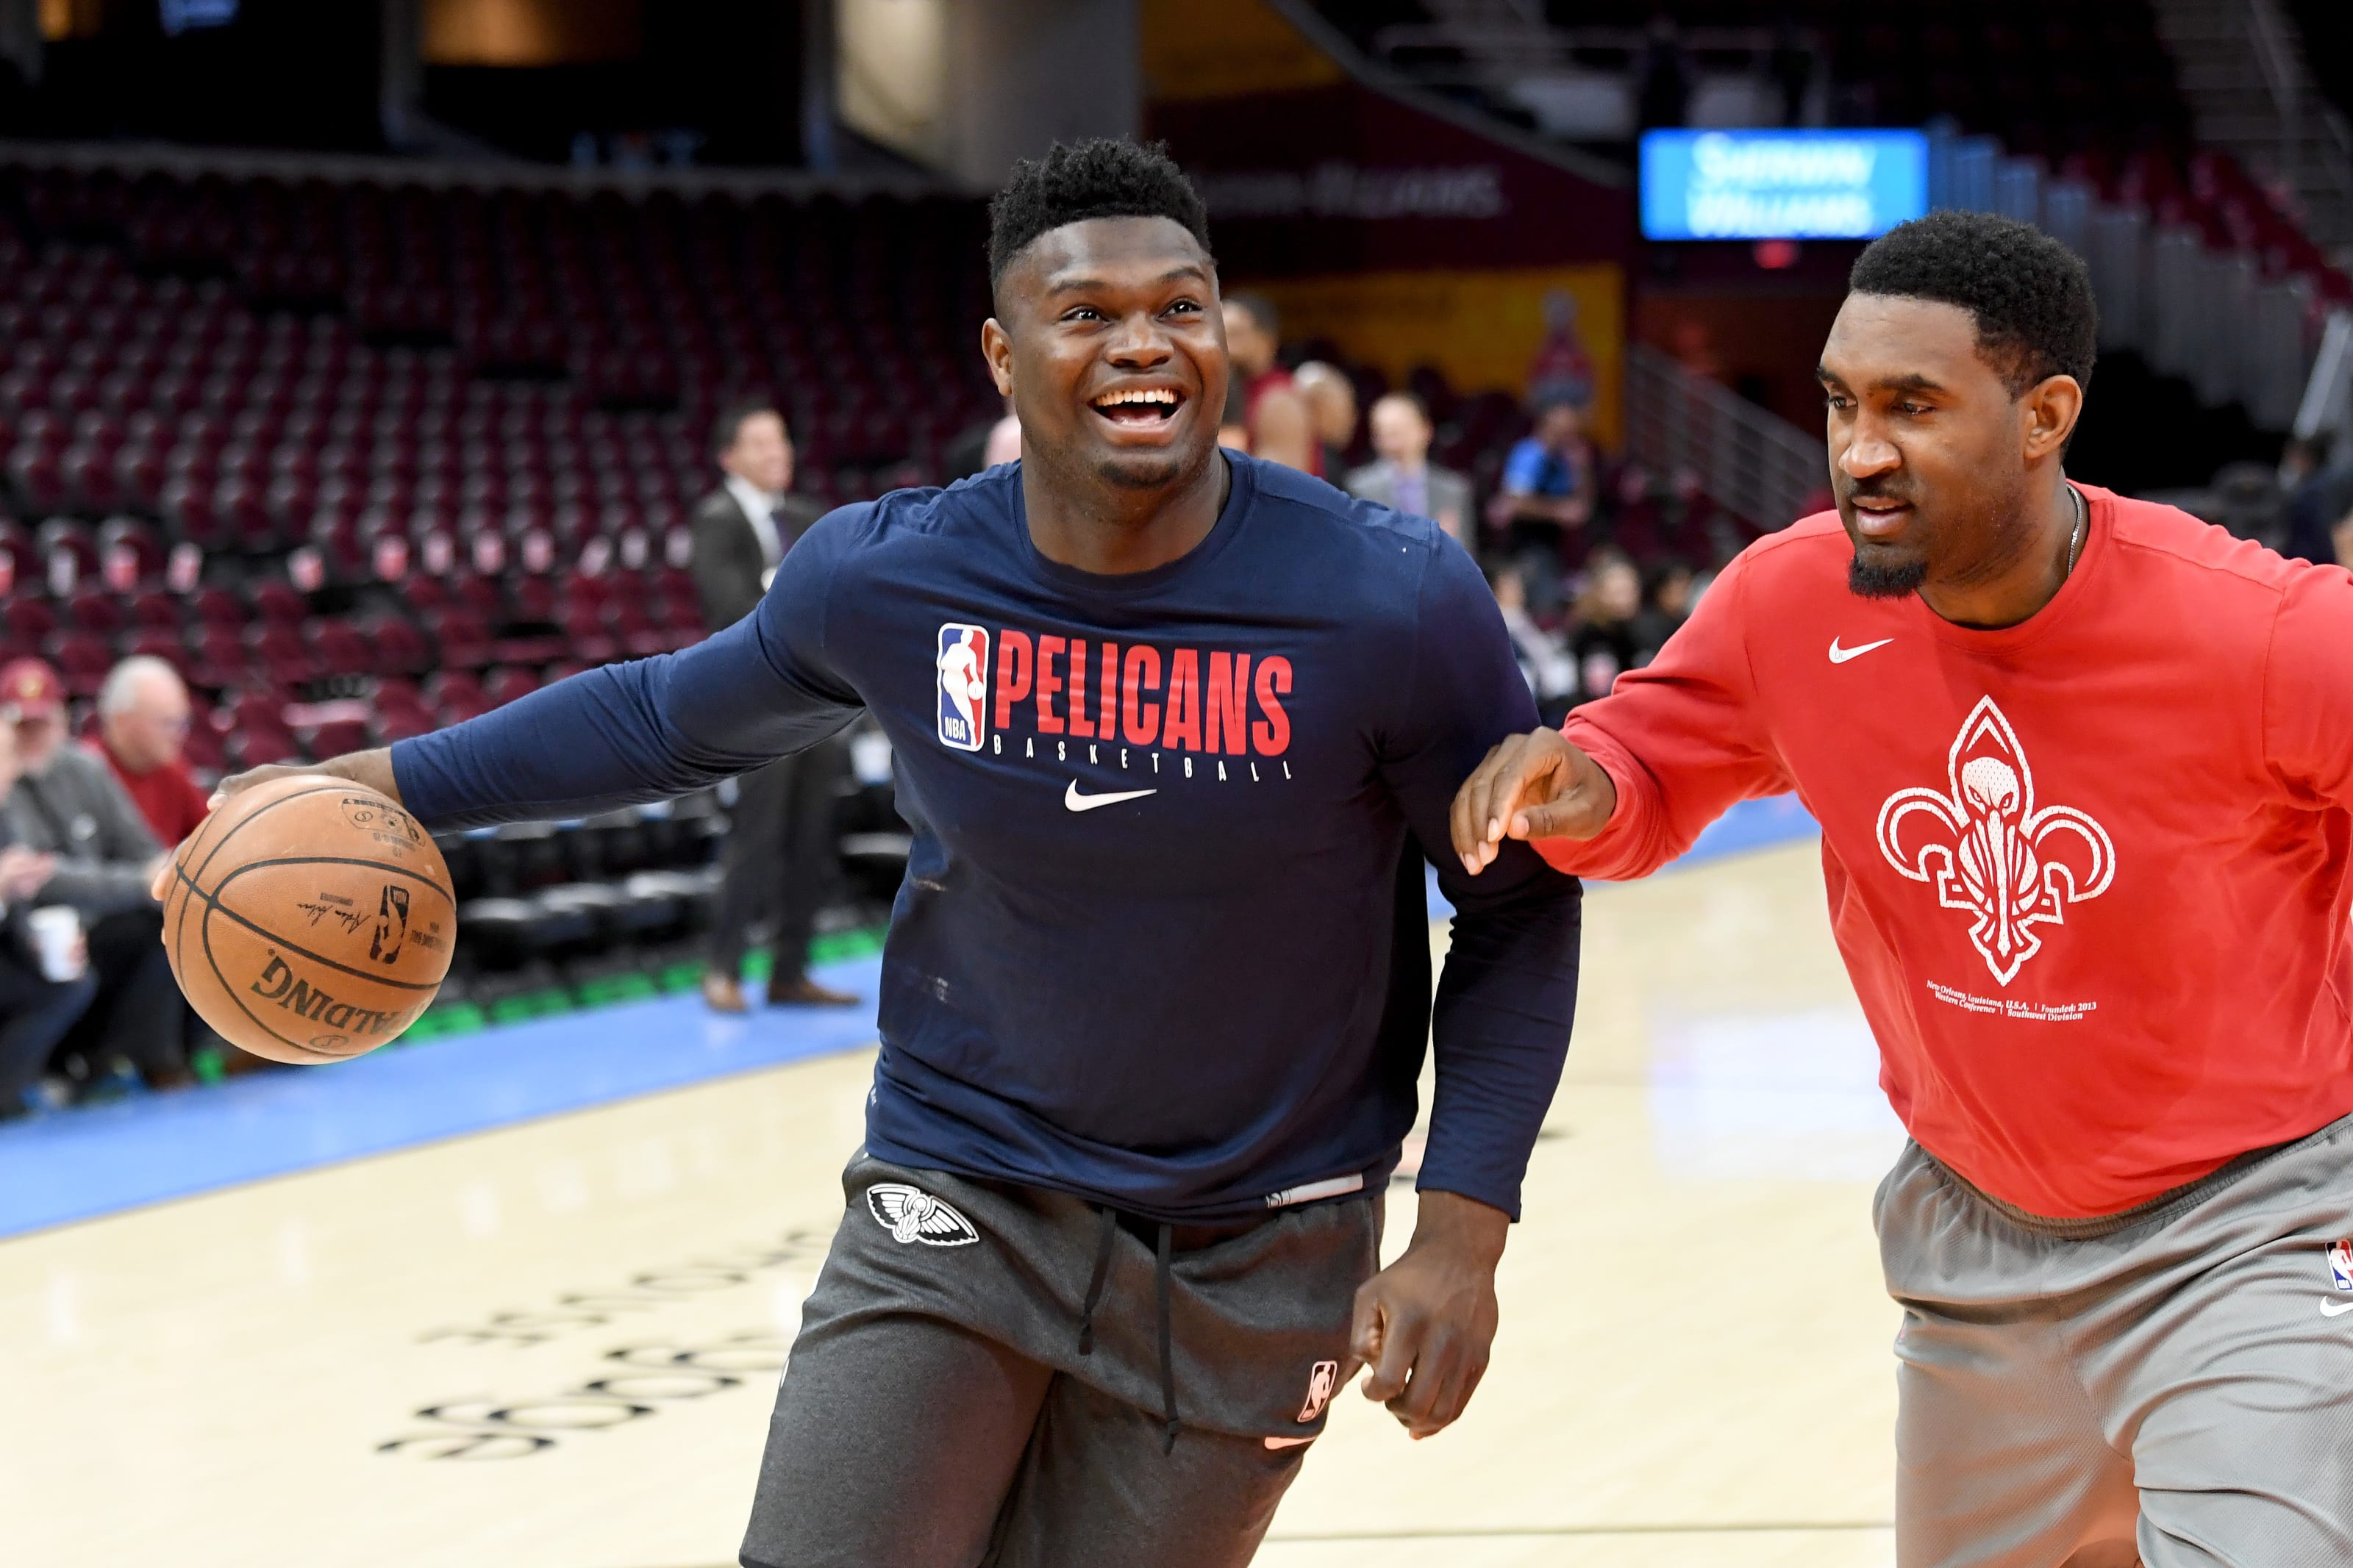 Zion Williamson hits the court for warm ups with the New Orleans Pelicans